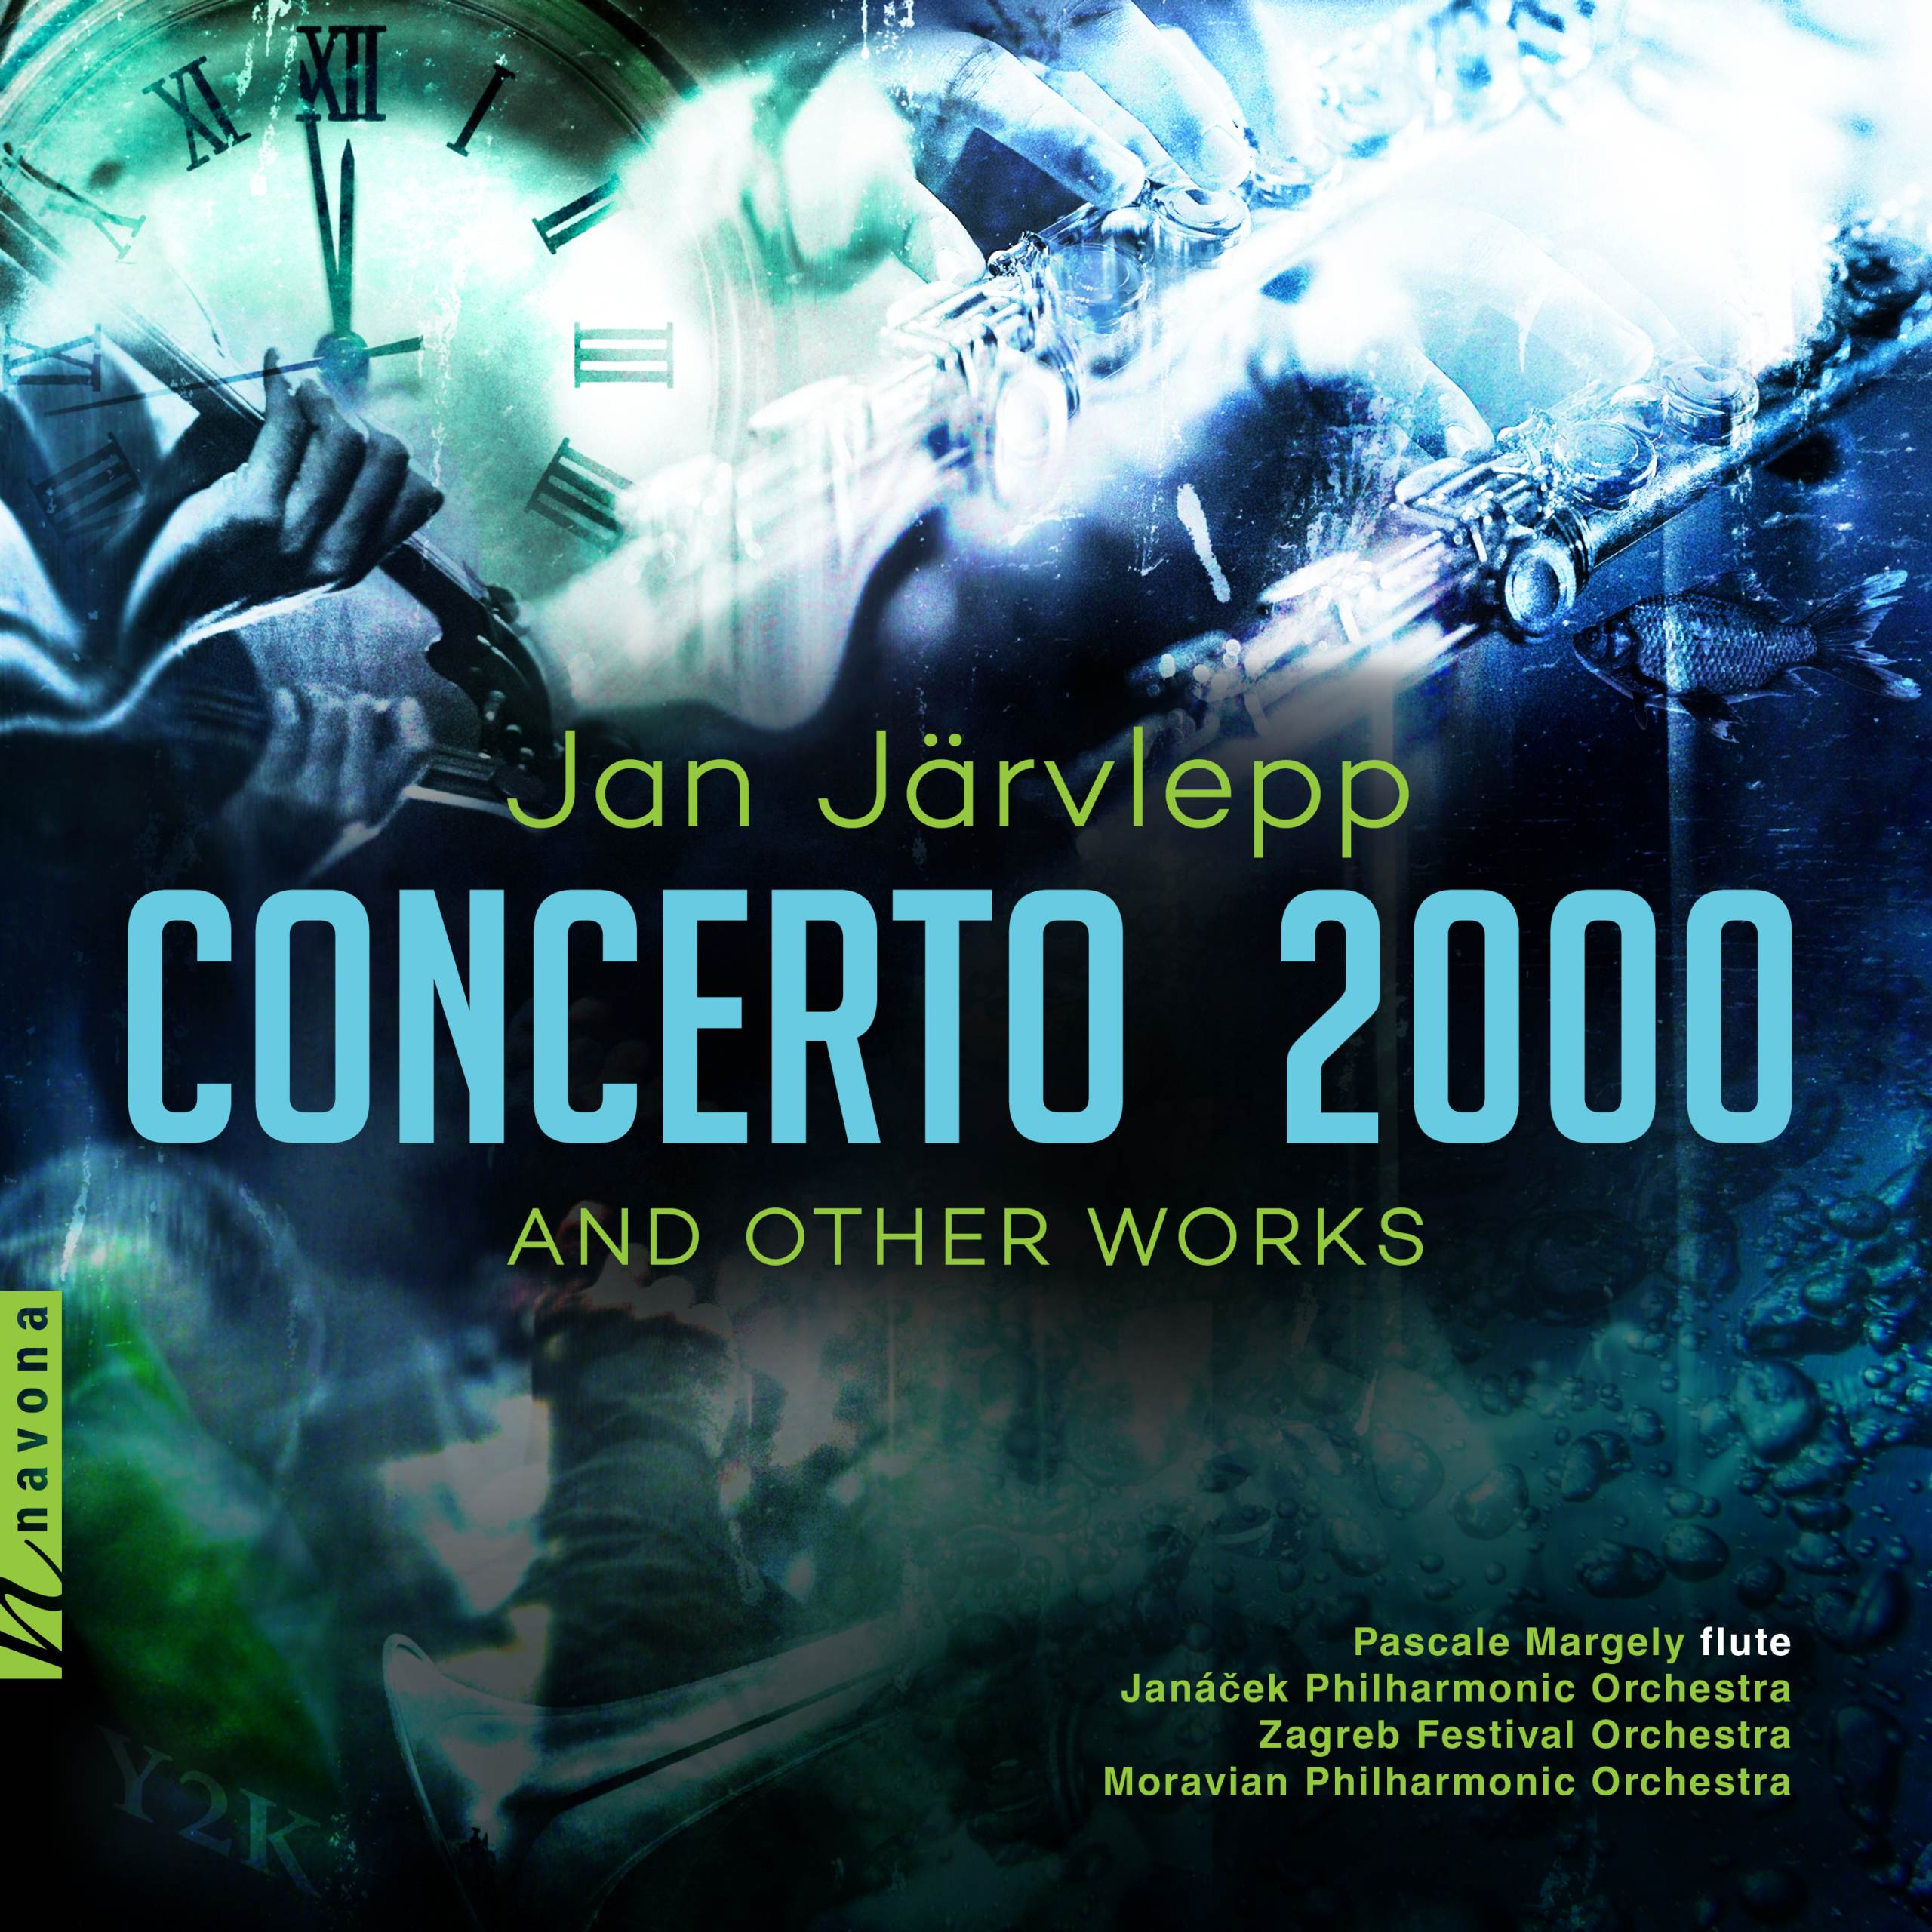 Concerto 2000 - Jan Järvlepp - Album Cover